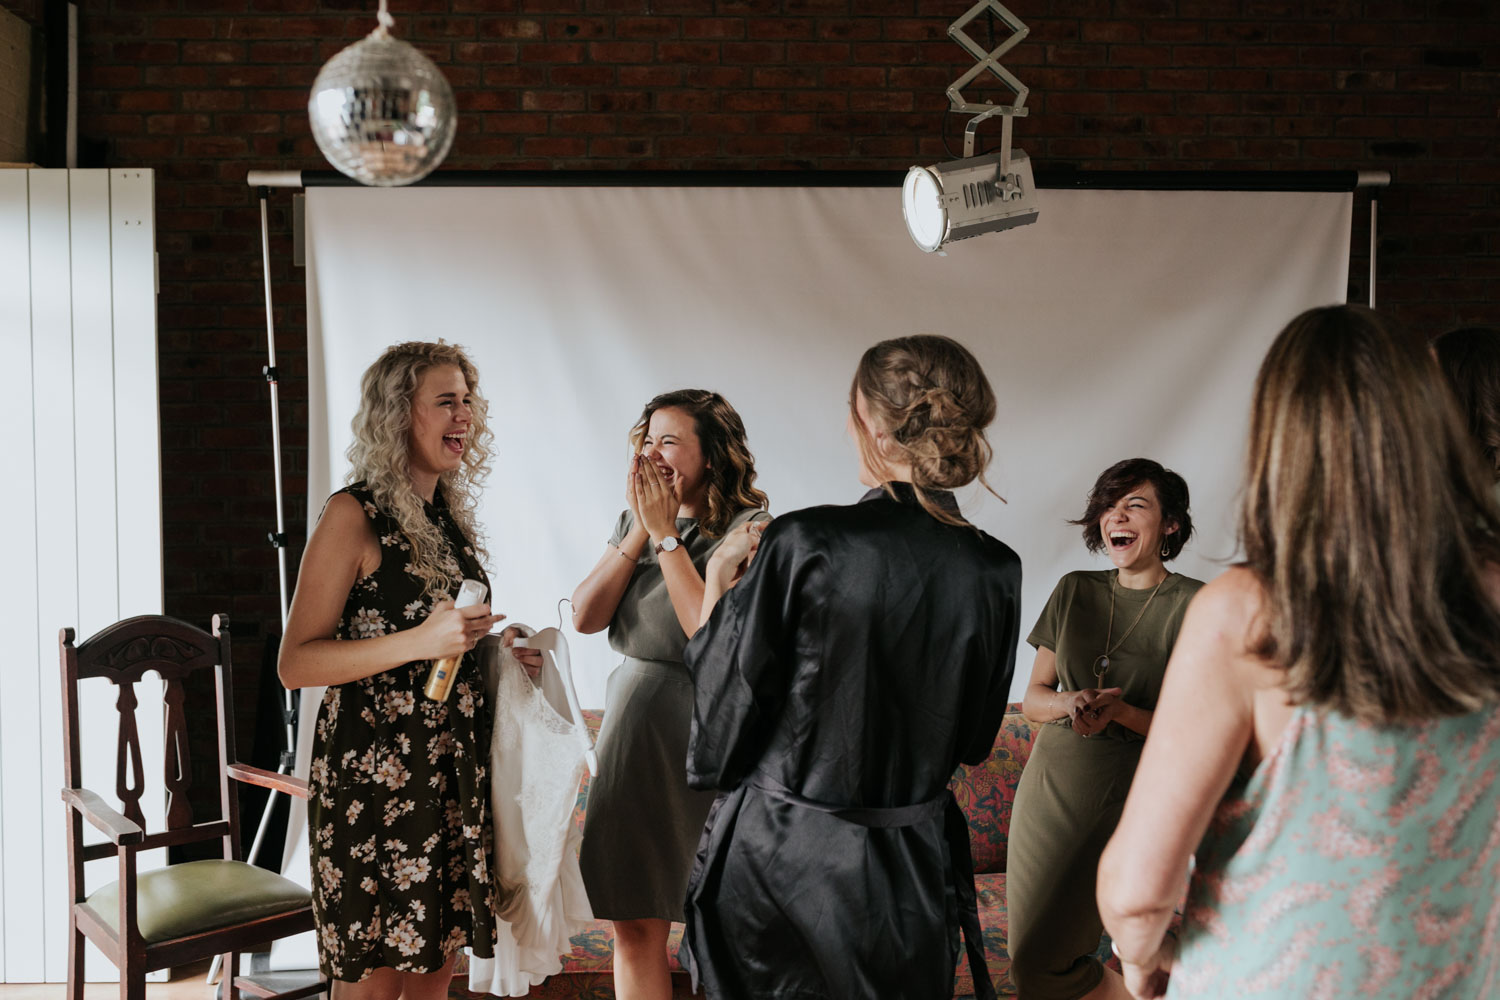 Candid Happy Moment Of Bride Wearing Black Silk Gown Laughing With Bridesmaids